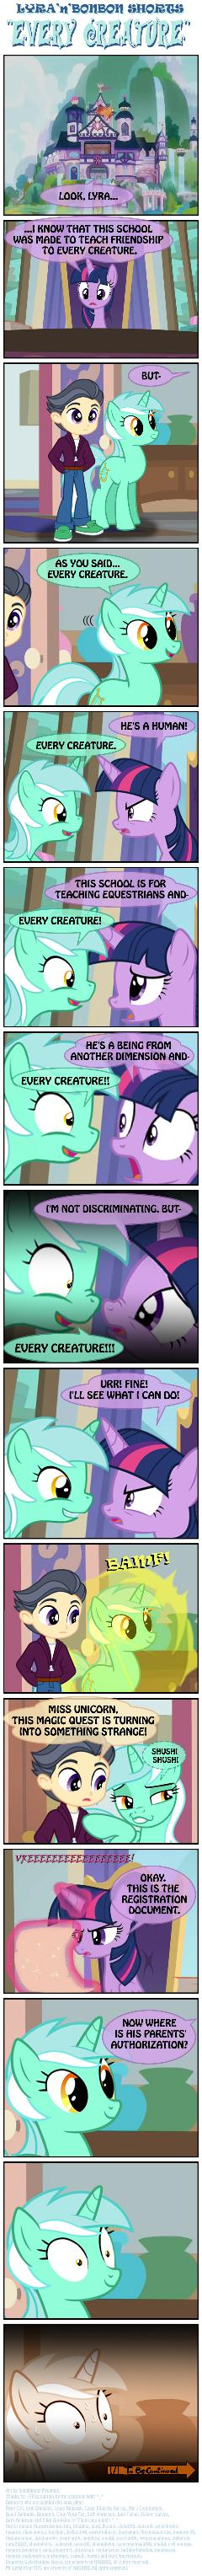 Lyra 'n' Bonbon shorts: ''EVERY CREATURE''